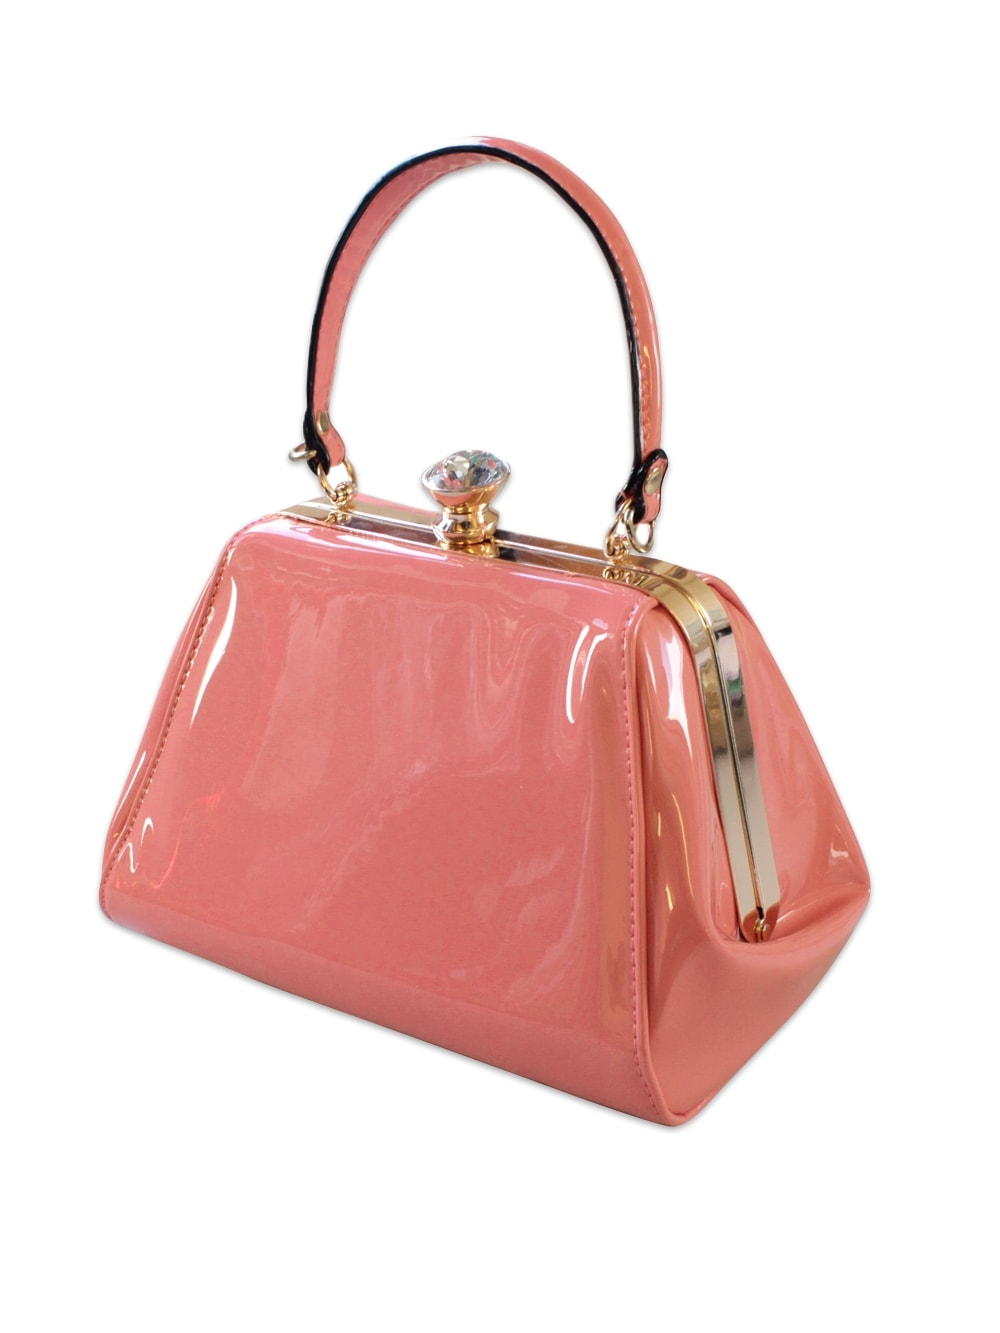 Shop baby pink leather handbags from Alexander McQueen, Dolce & Gabbana, Marc Jacobs and from Farfetch, Italist, jelly555.ml and many more. .